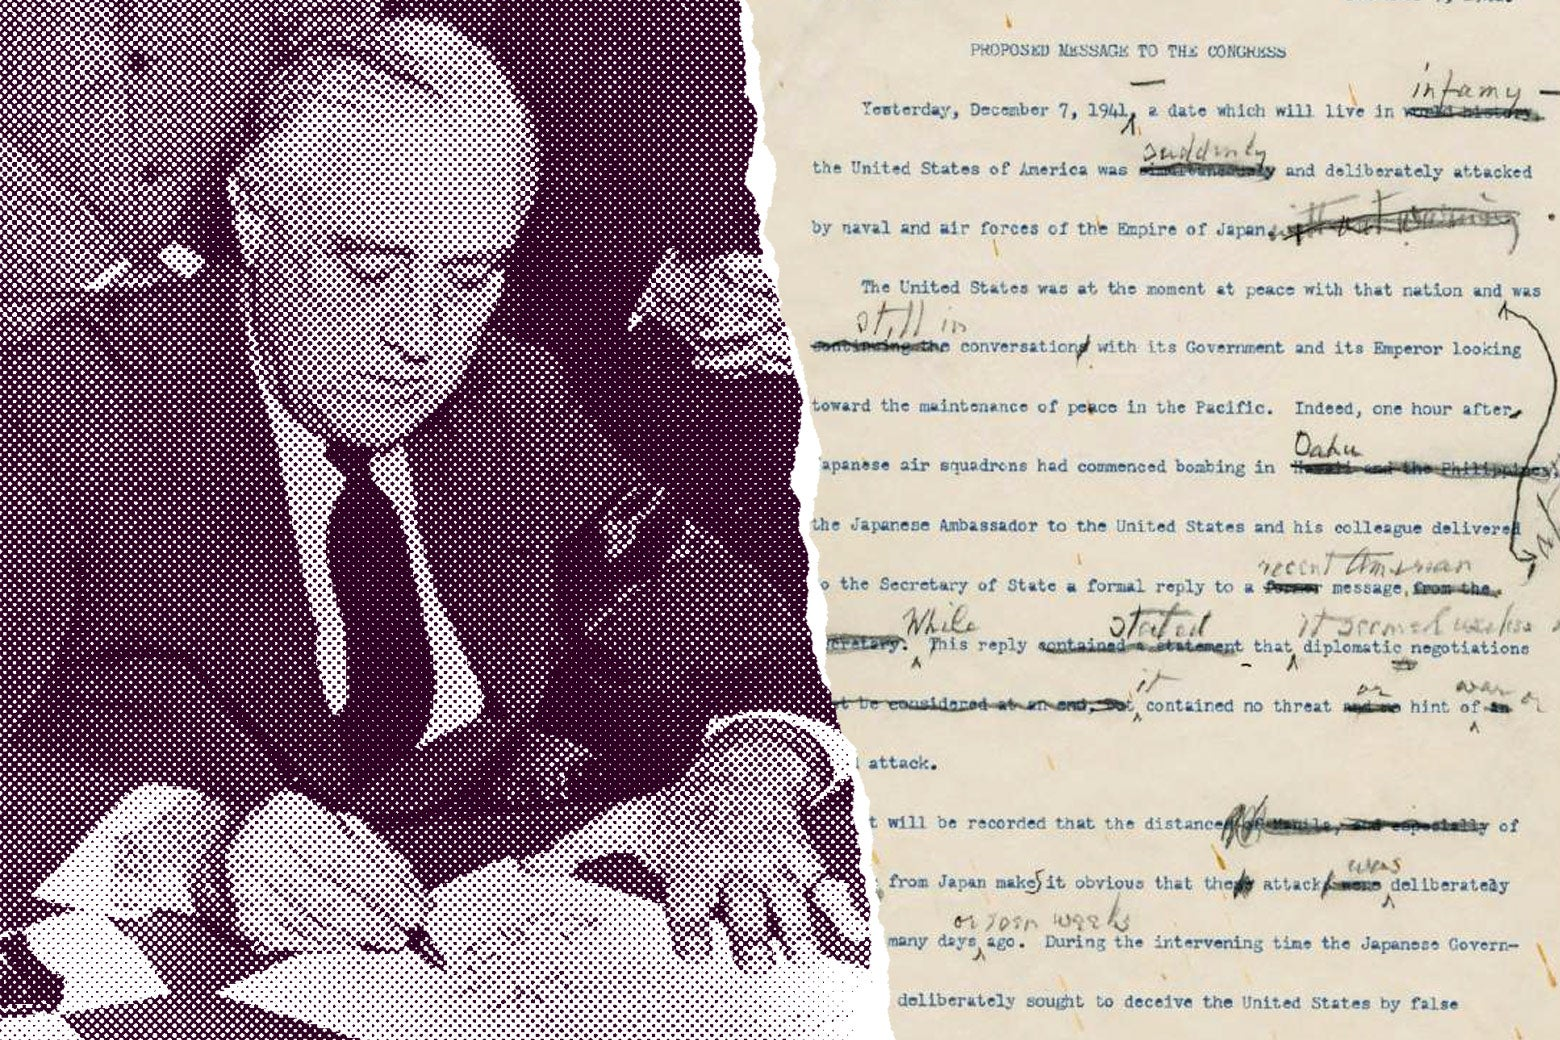 December 8, 1941 -  Franklin Roosevelt asks Congress for a Declaration of War with Japan in writing.